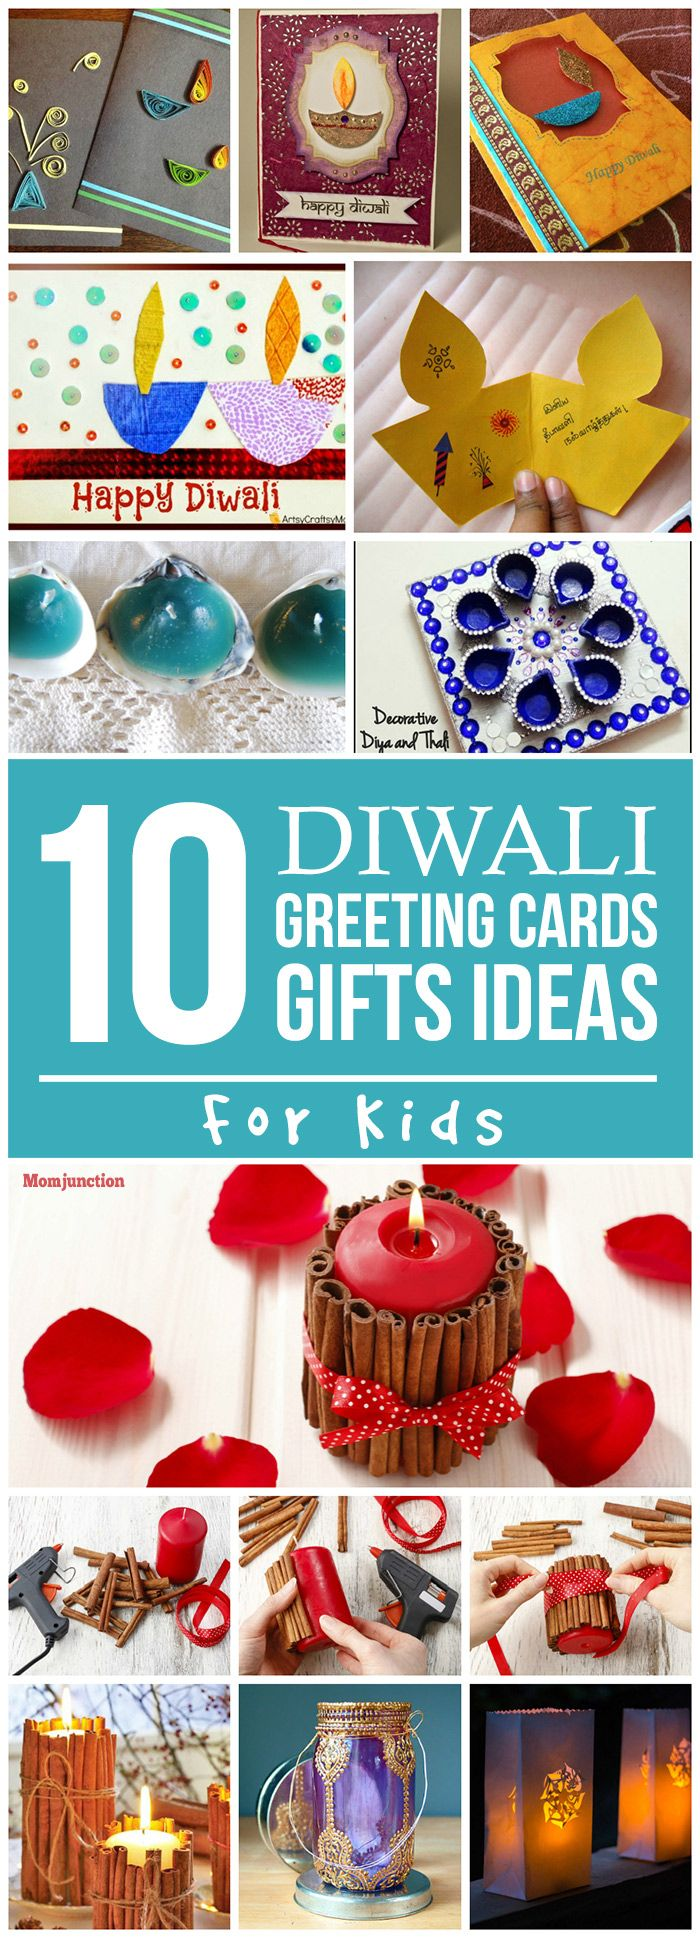 Top 10 diwali greeting cards and gifts for kids diwali greeting are you looking for ideas on making diwali greeting cards for kids to send or handmade kristyandbryce Choice Image